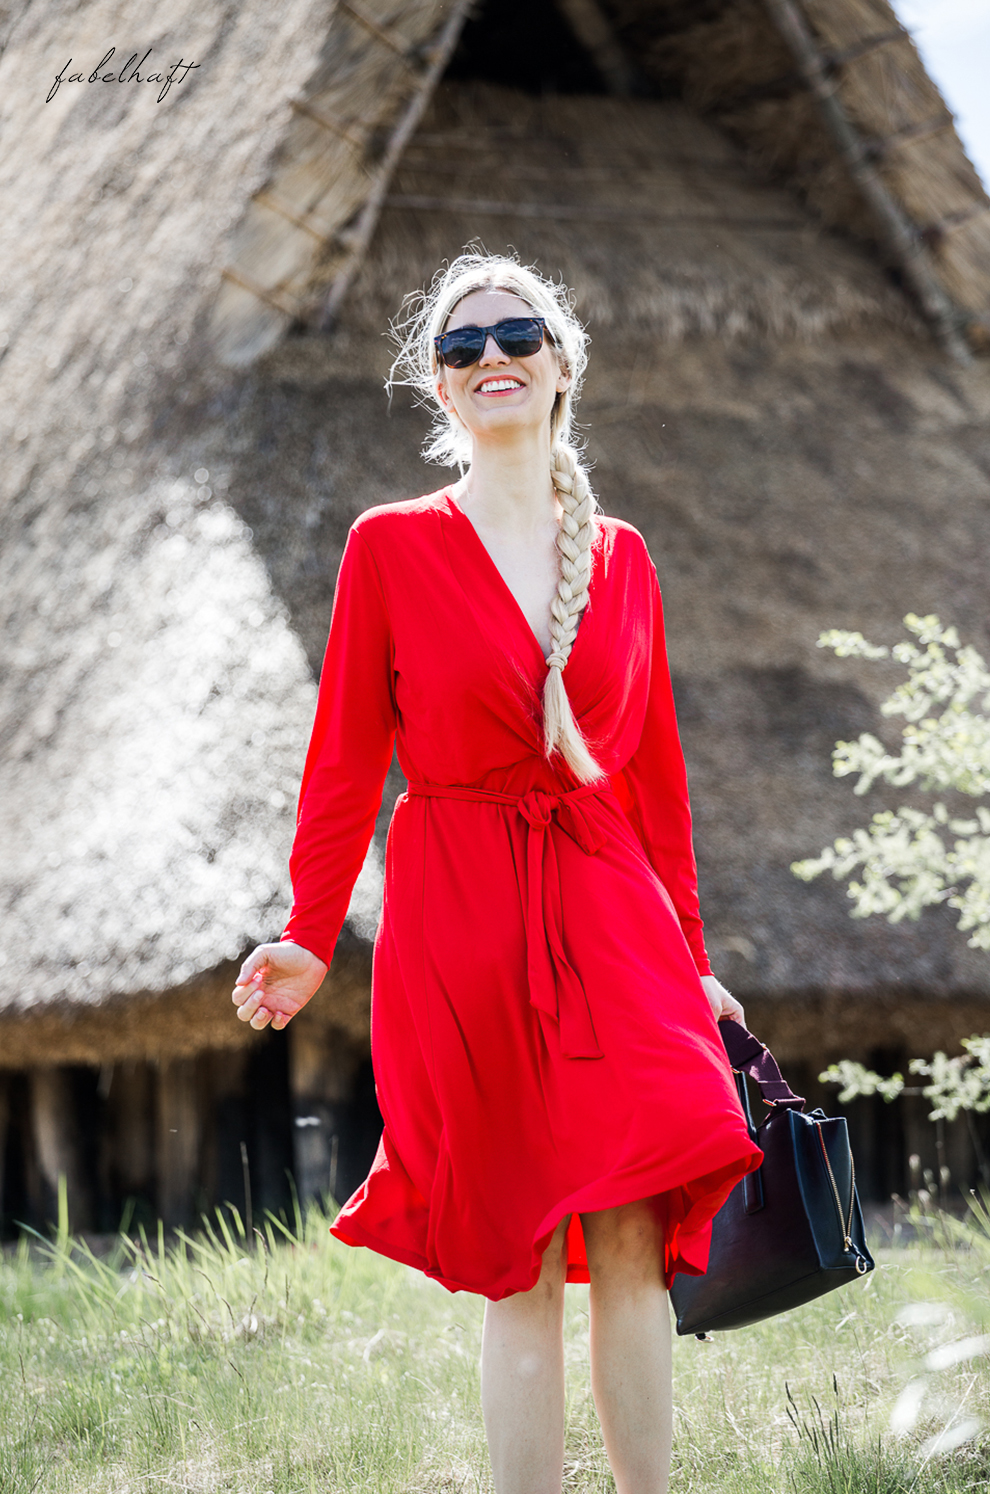 Midikleid Red dress Rotes Kleid V Ausschnitt Blond Mode Trend Sommerkleid Frühling Abendkleid Style Fashion Blogger Langarm 4